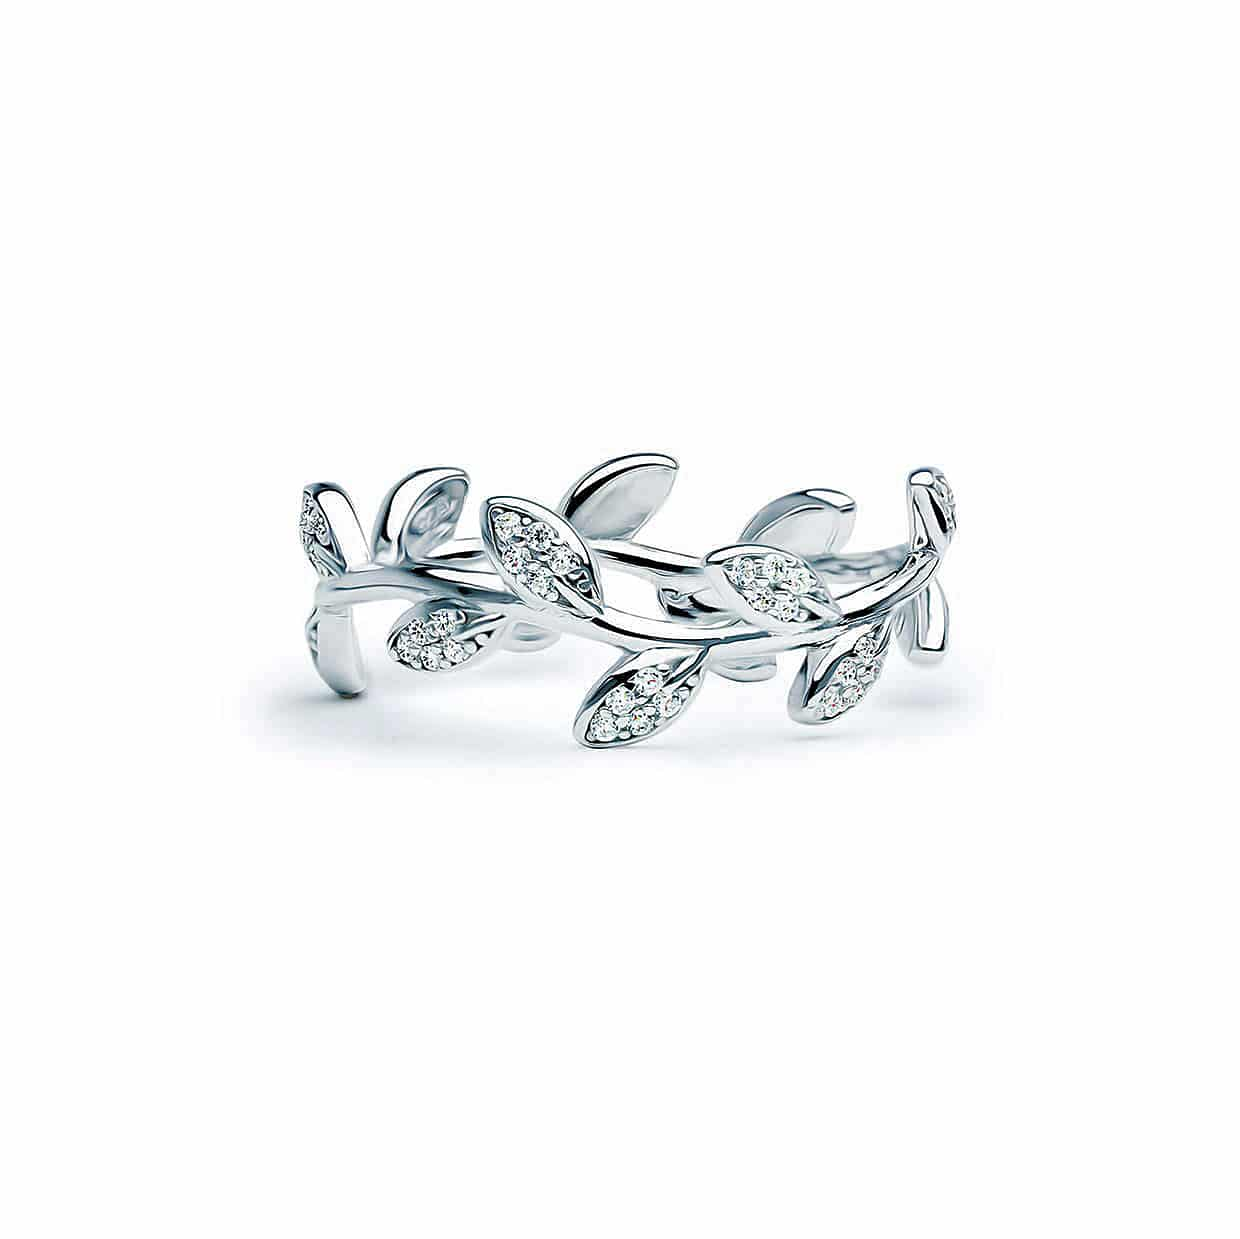 Details about  /Art Nouveau Flower and Leaf Design 925 Silver White Sapphire Full Eternity Ring